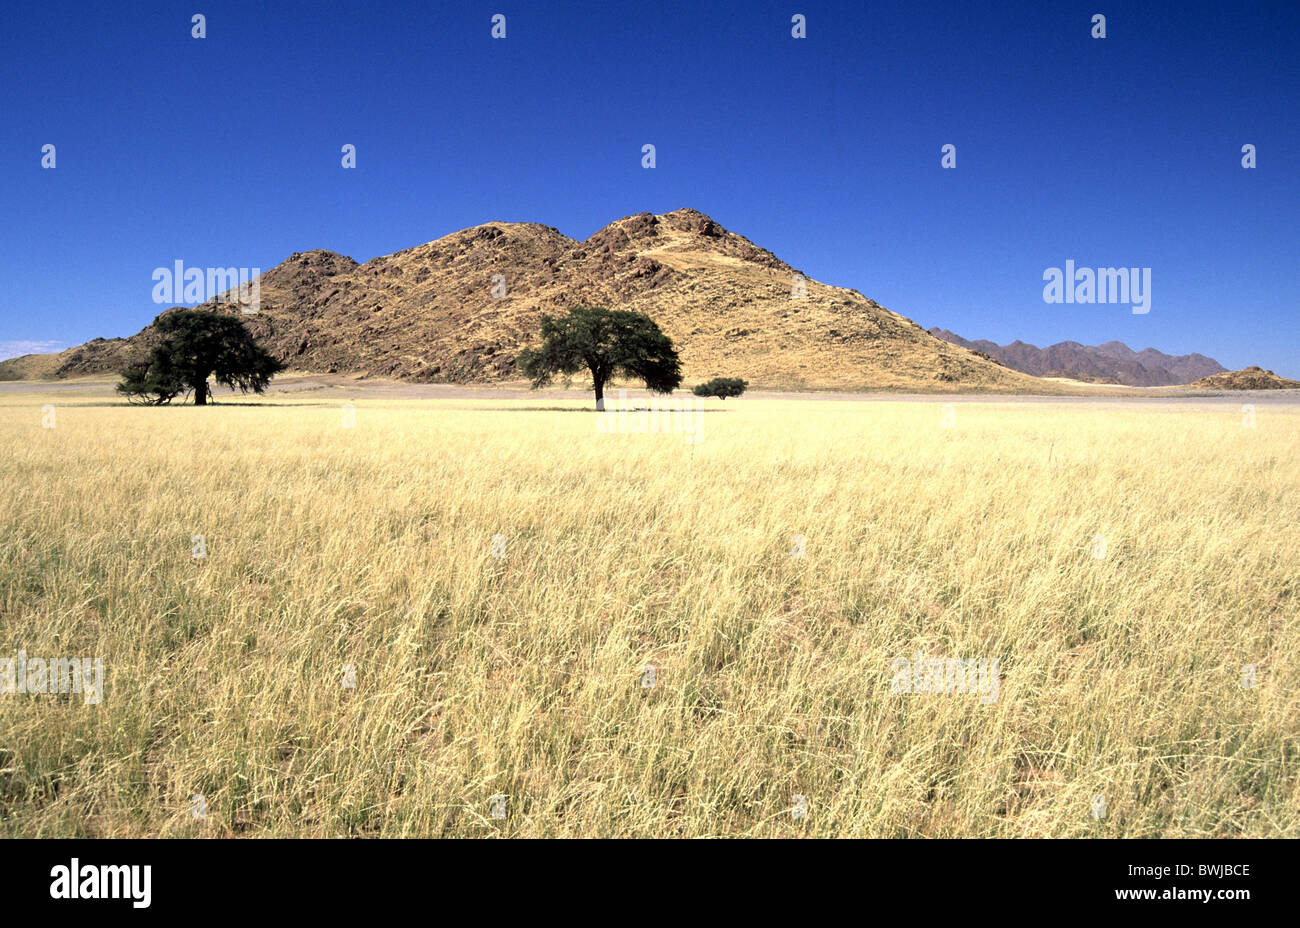 scenery landscape savanna steppe Africa Namibia South-West ...